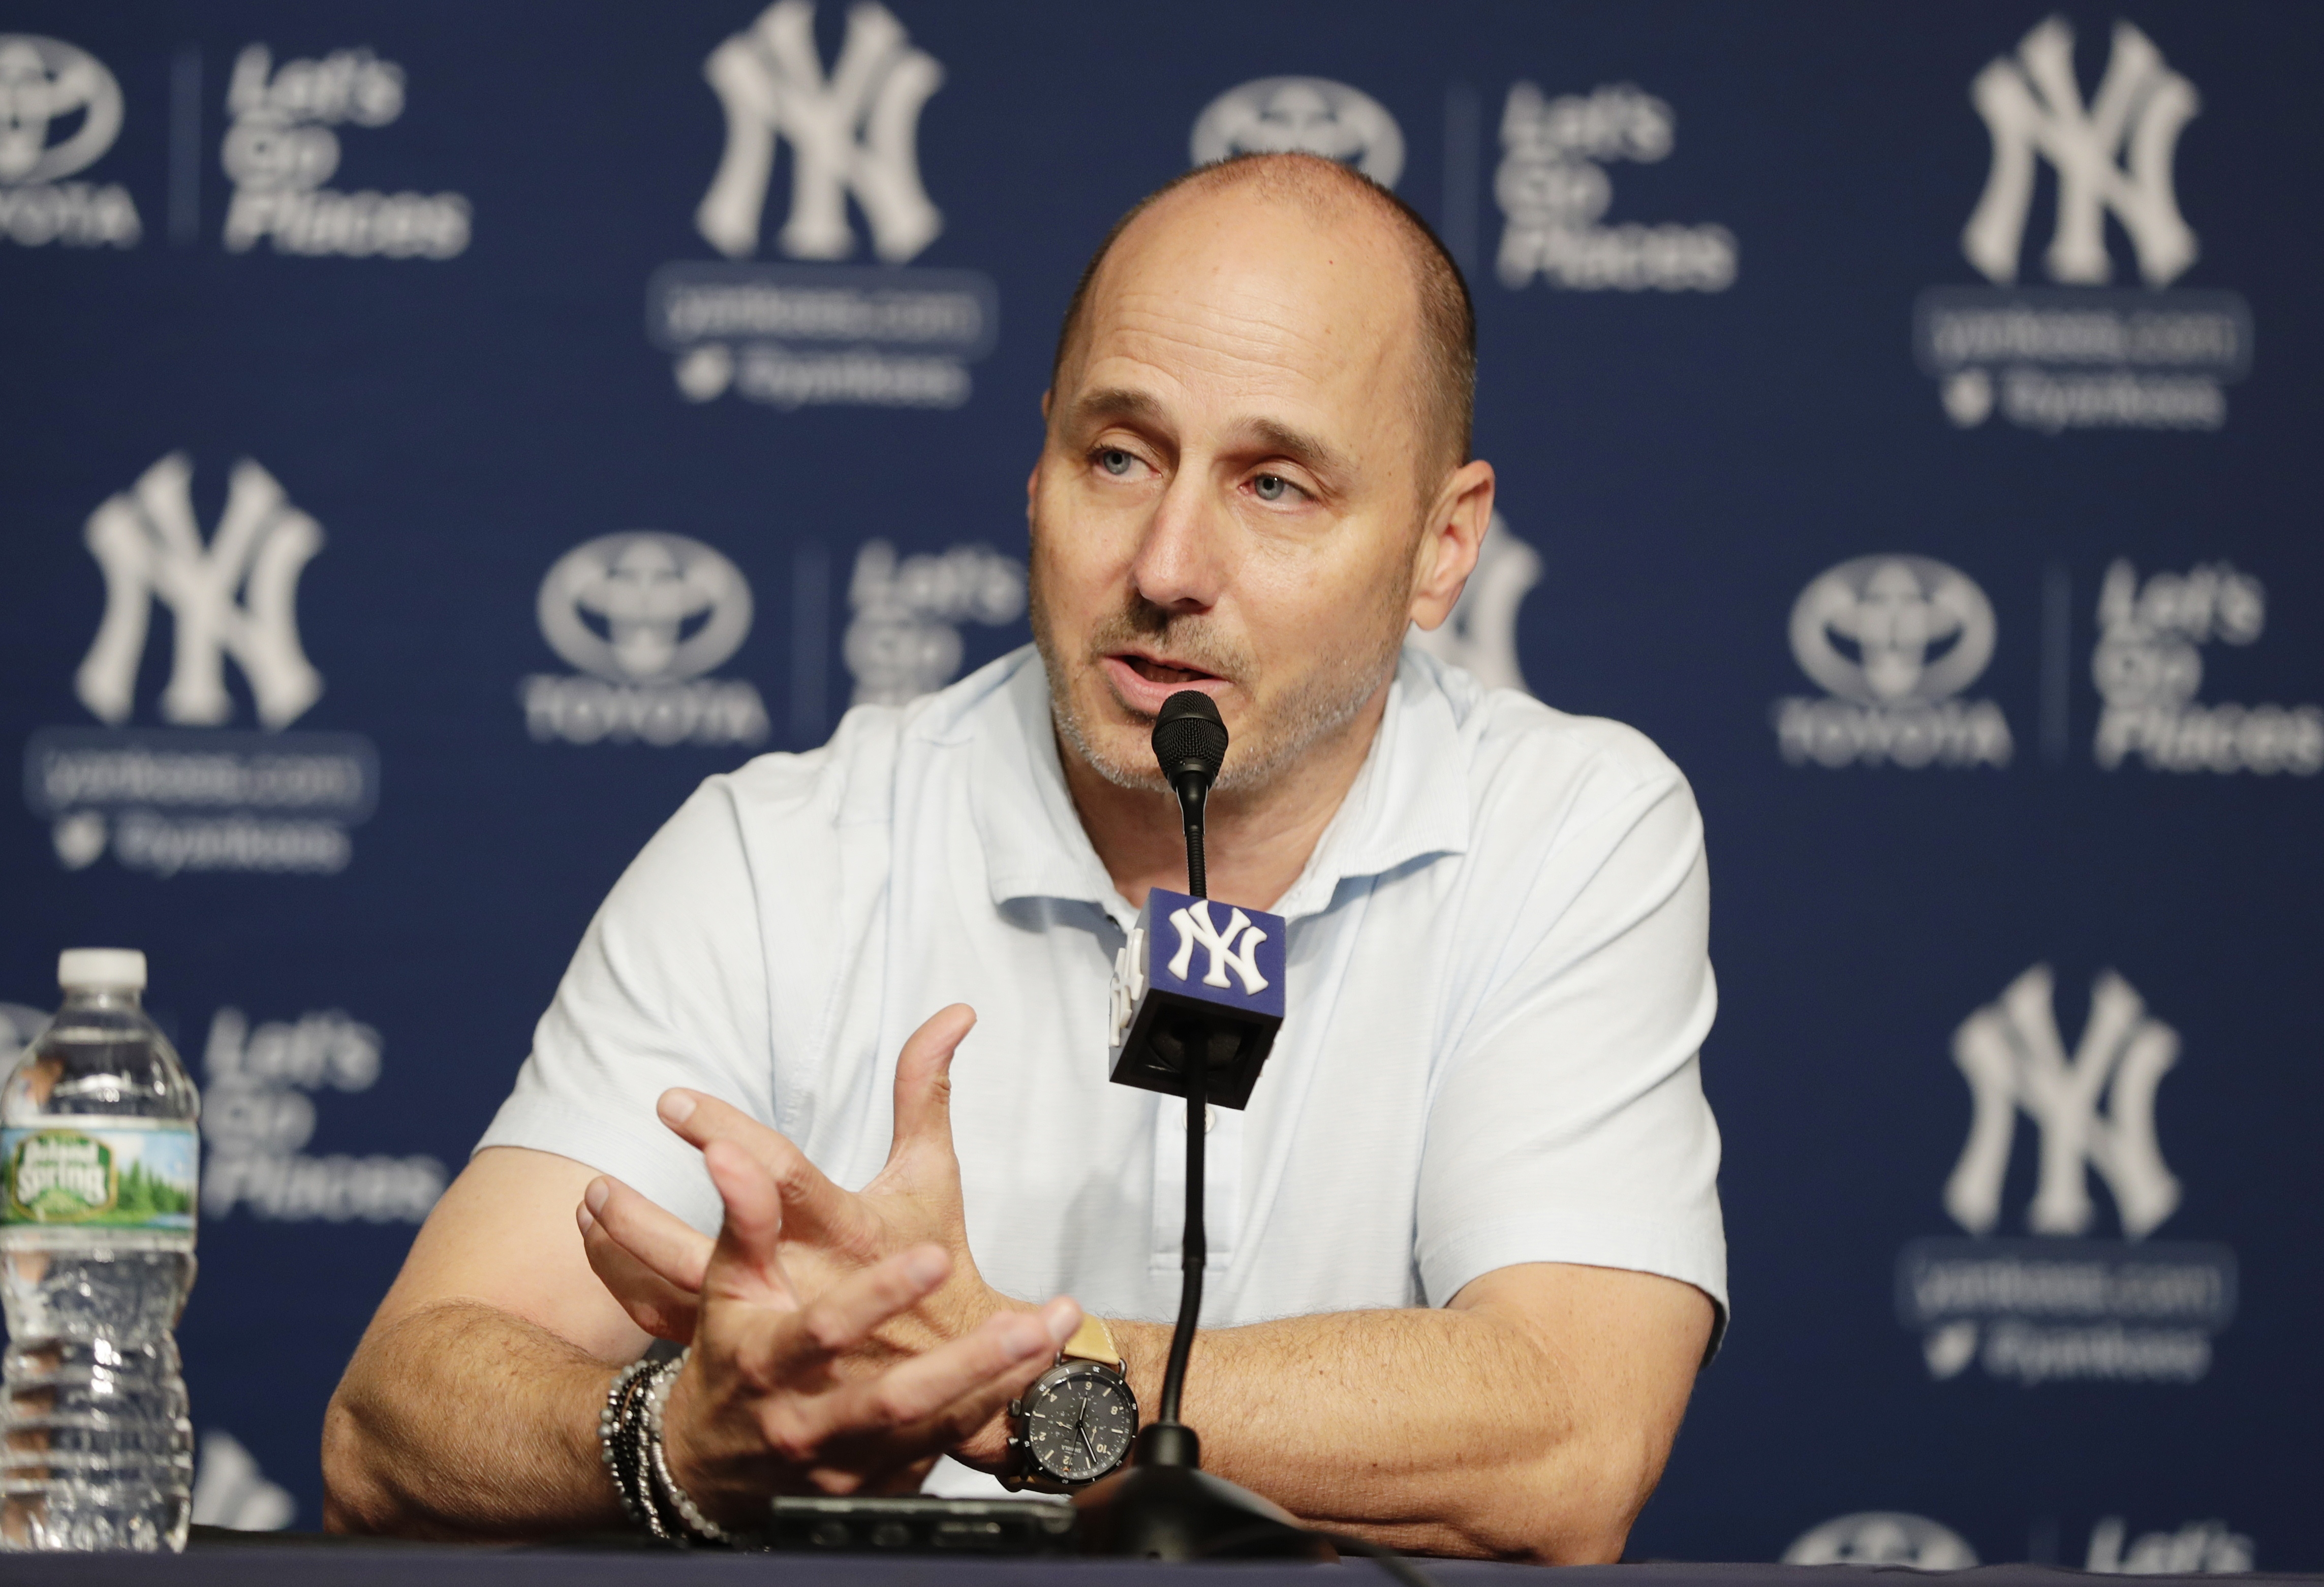 11 takeaways from Yankees' Brian Cashman: Updates on Clint Frazier, James  Paxton, Giancarlo Stanton, more - nj.com